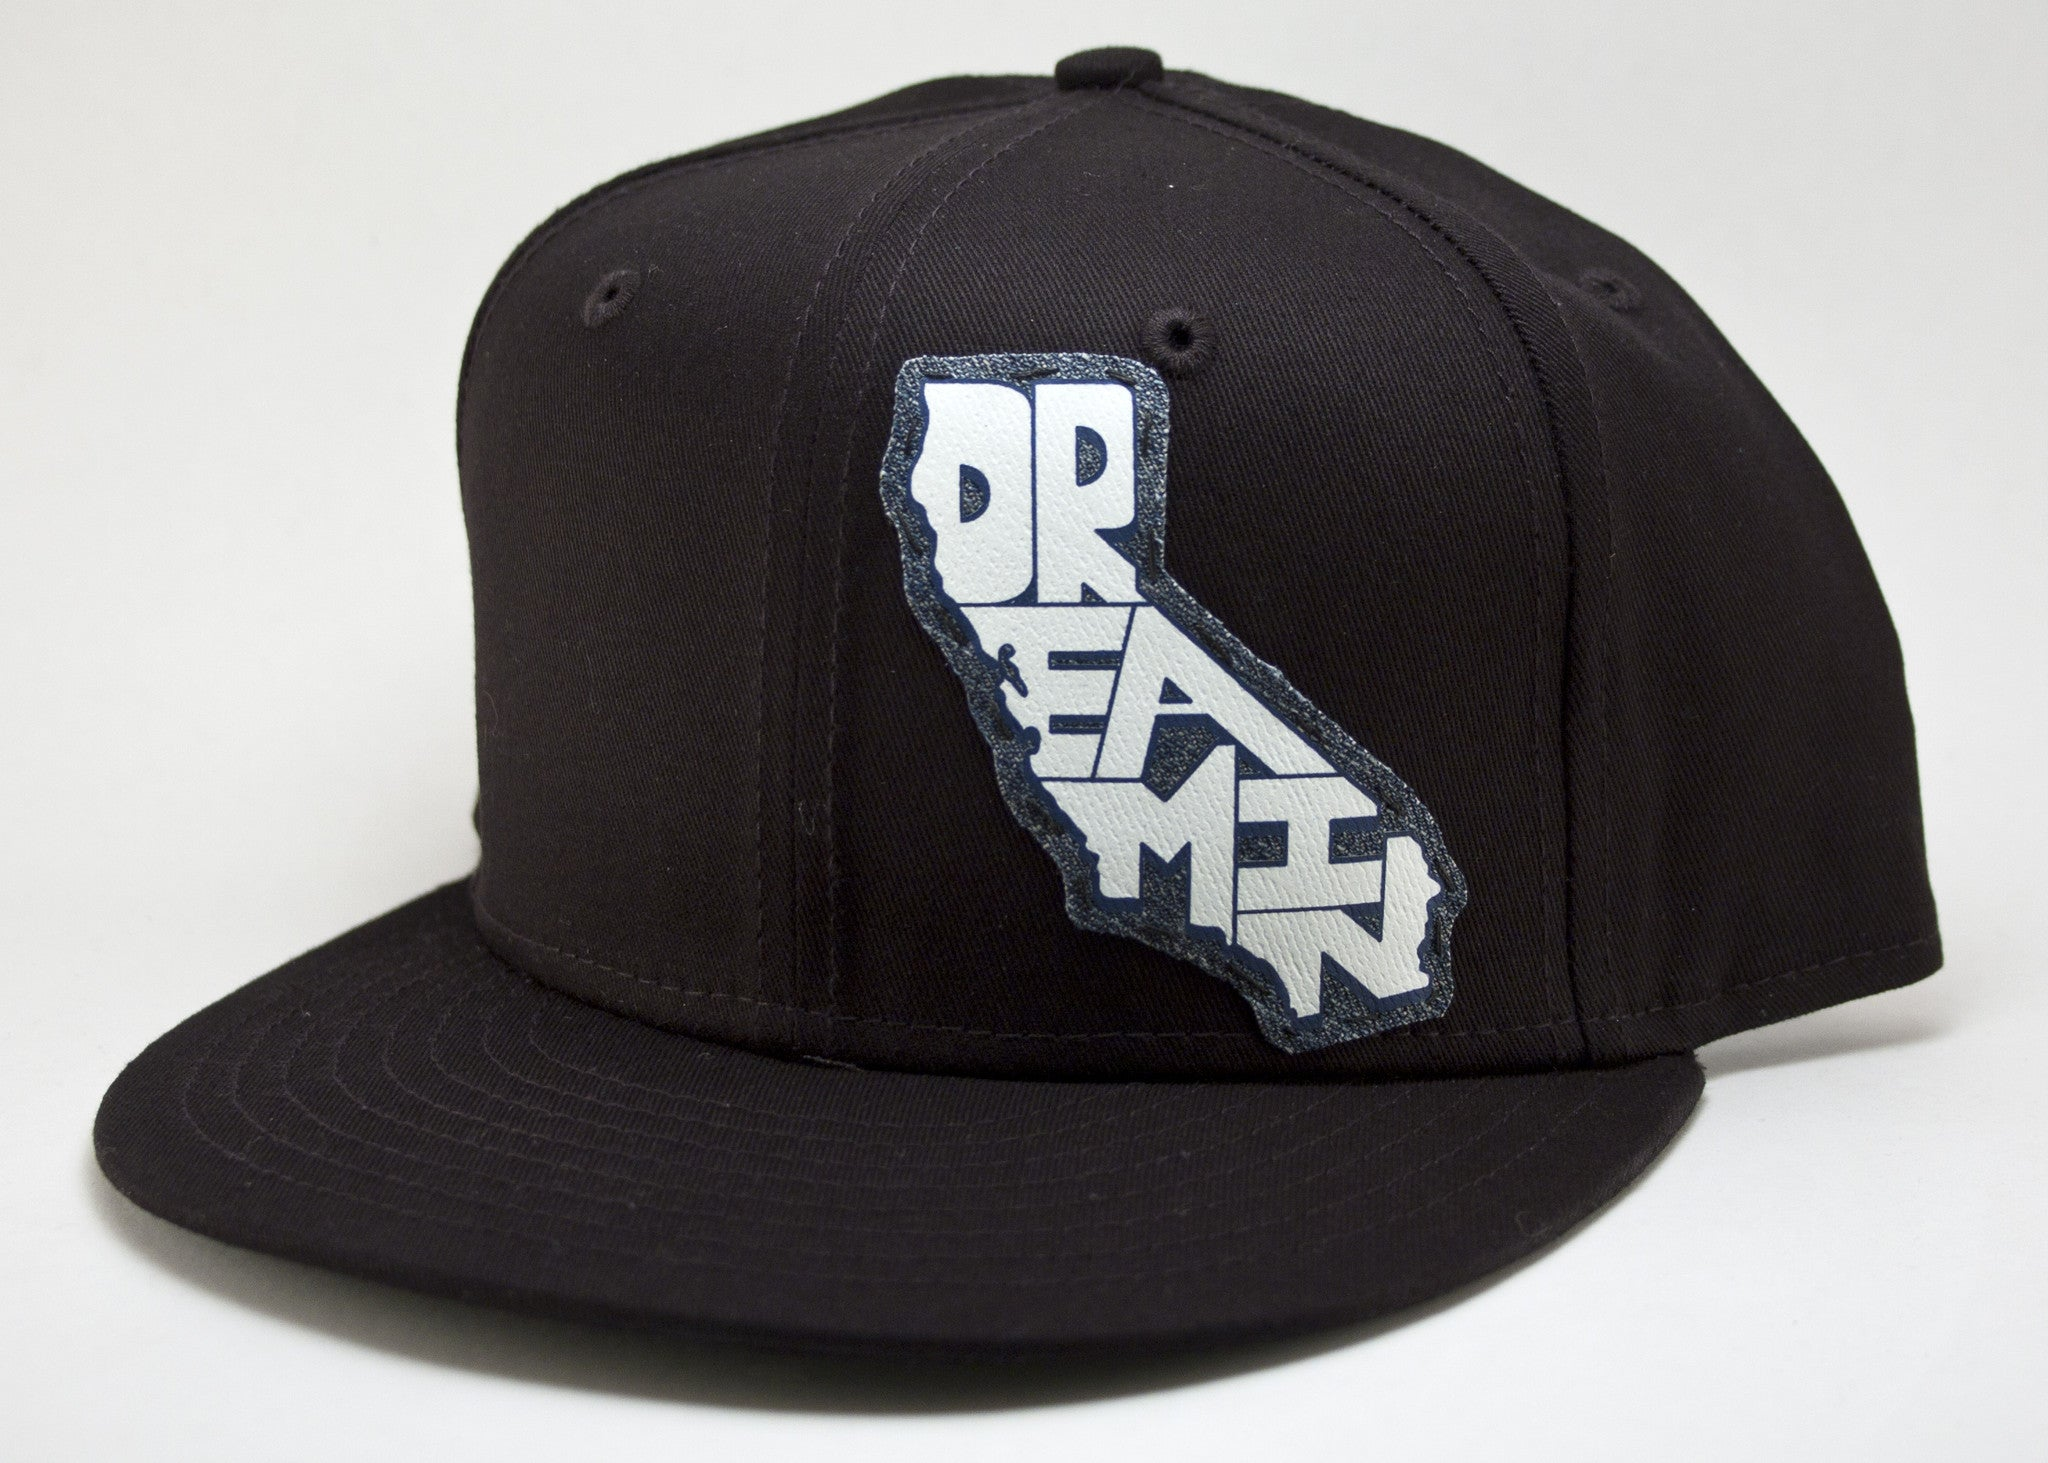 California Dreamin: Solids - Hats